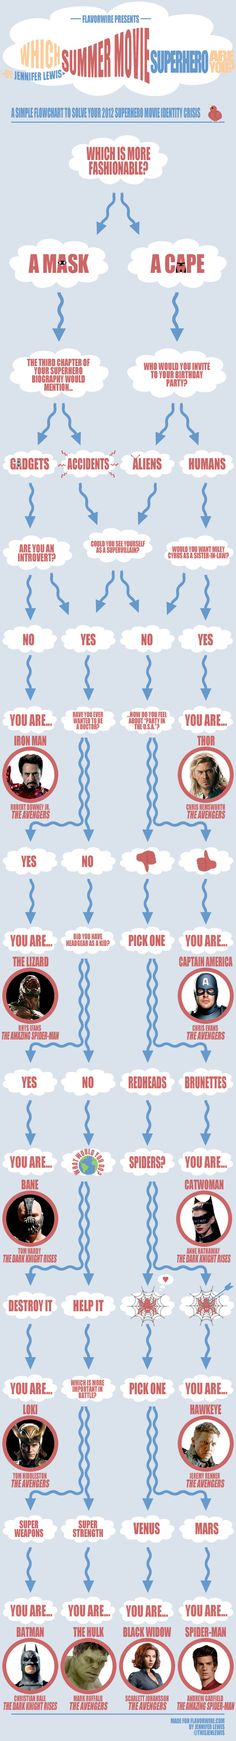 "What Summer Movie Superhero Are You rubric. ""Would you want Miley Cyrus as your sister-in-law?"""